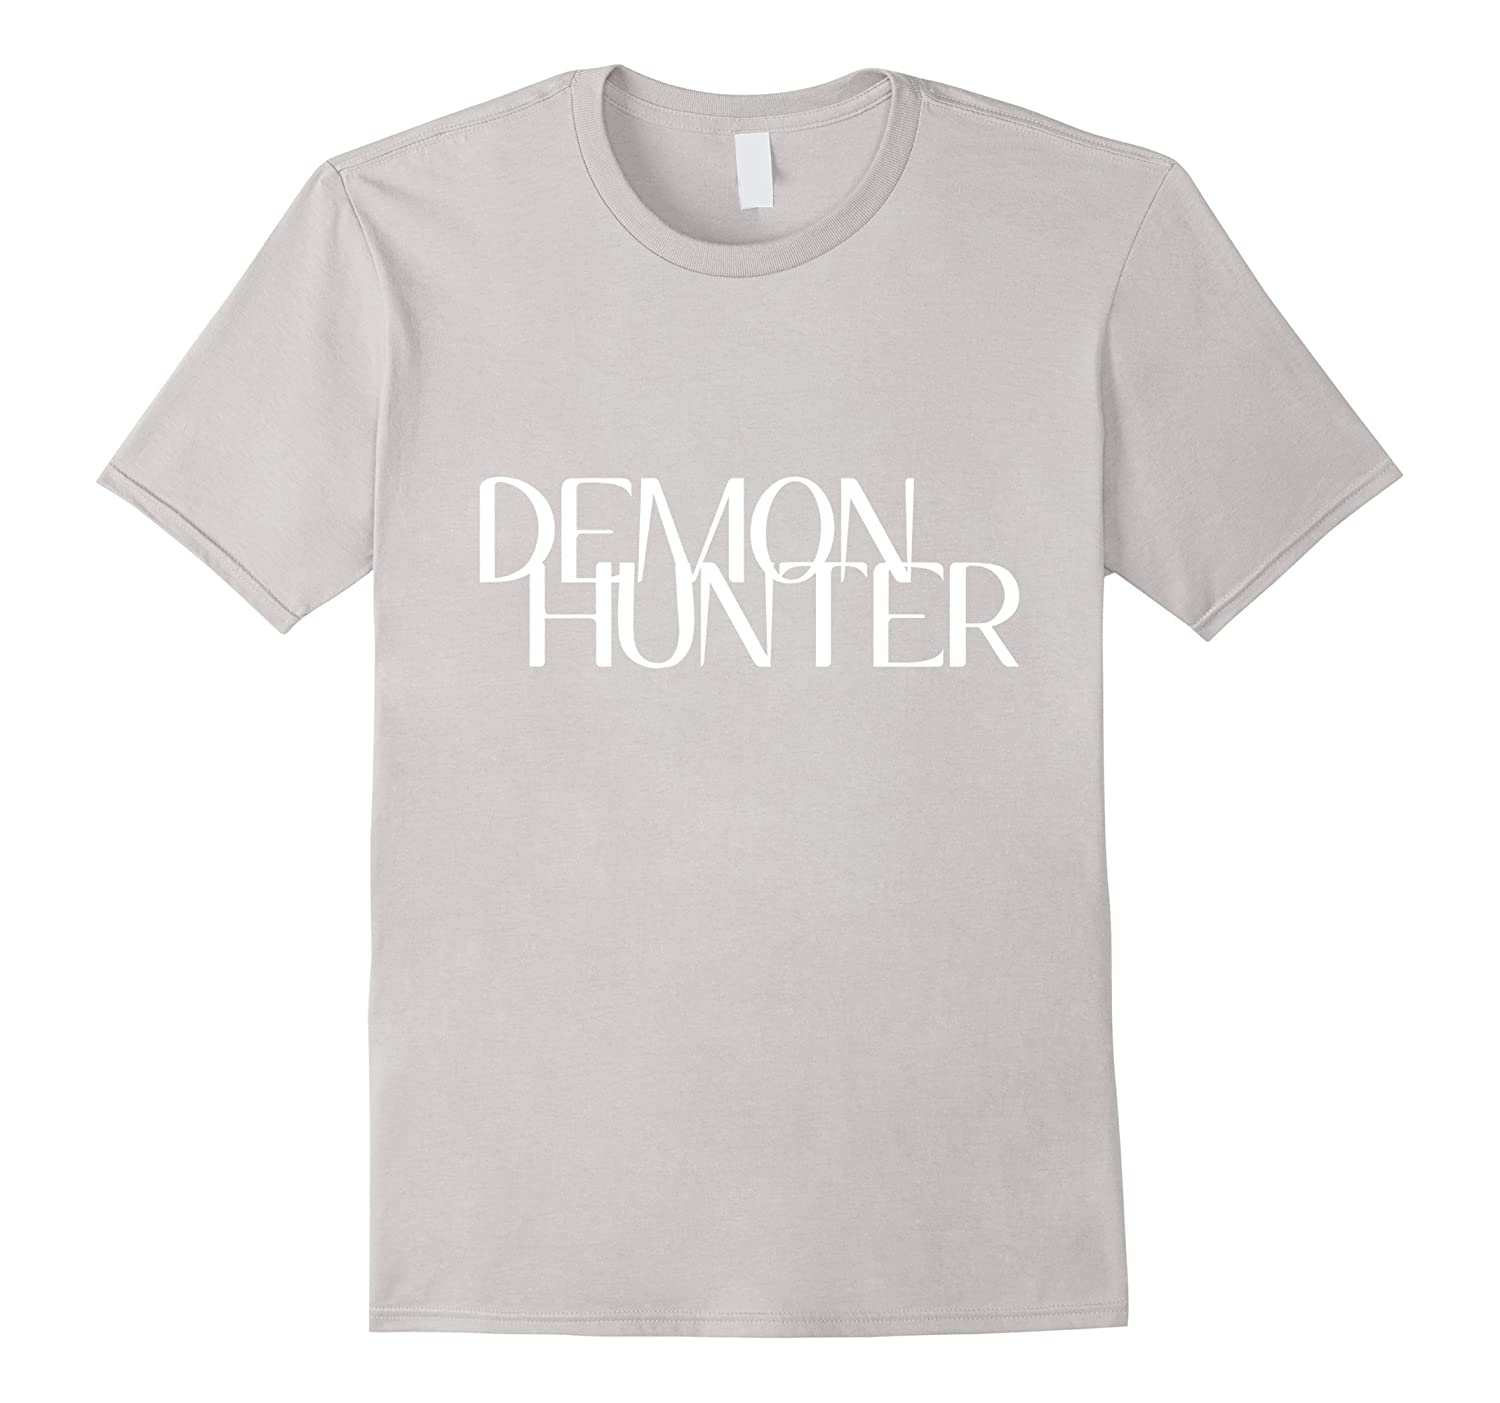 Demon Hunter Shirt